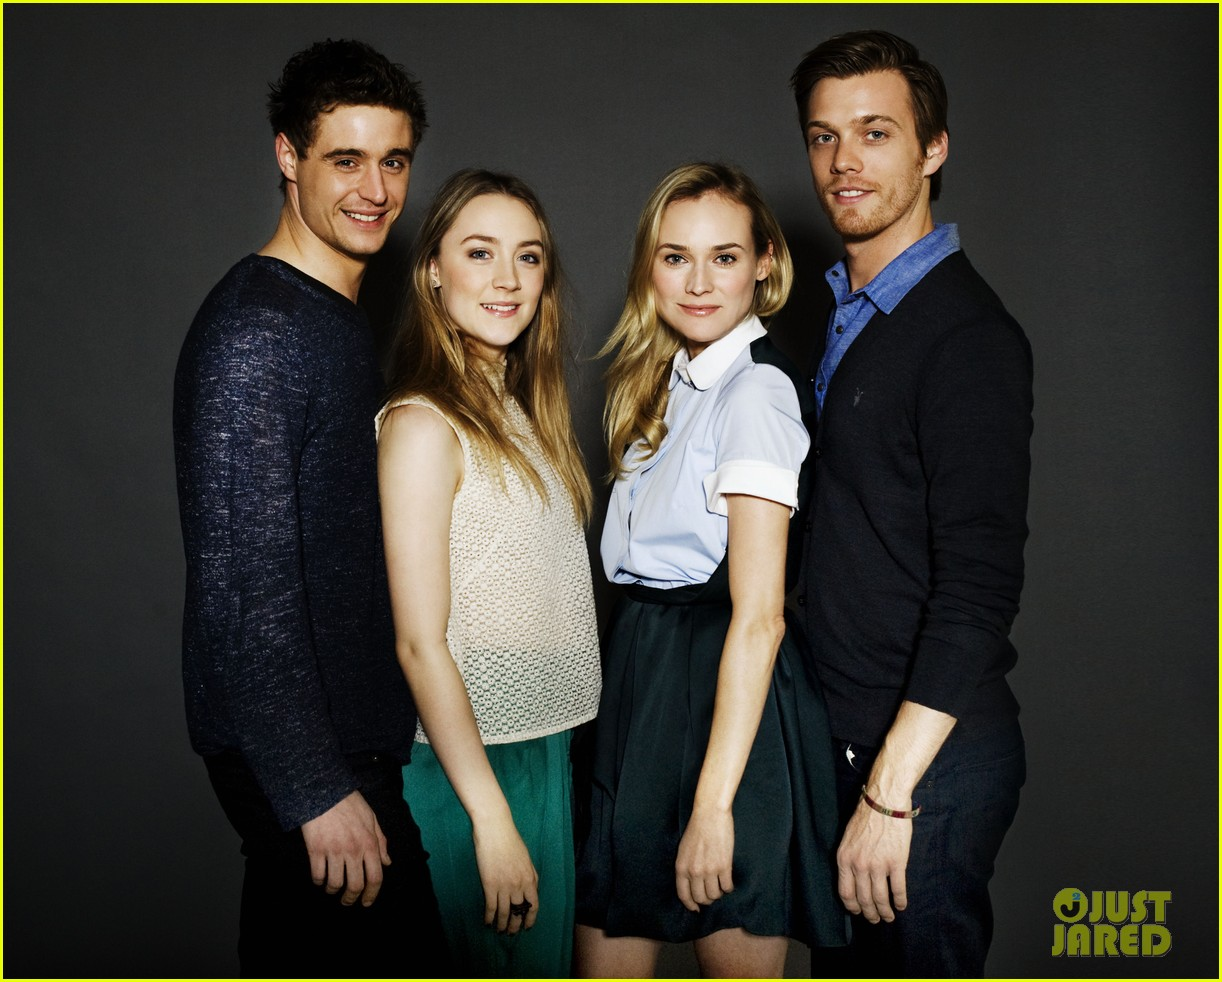 diane kruger jake abel the host cast portraits exclusive 02